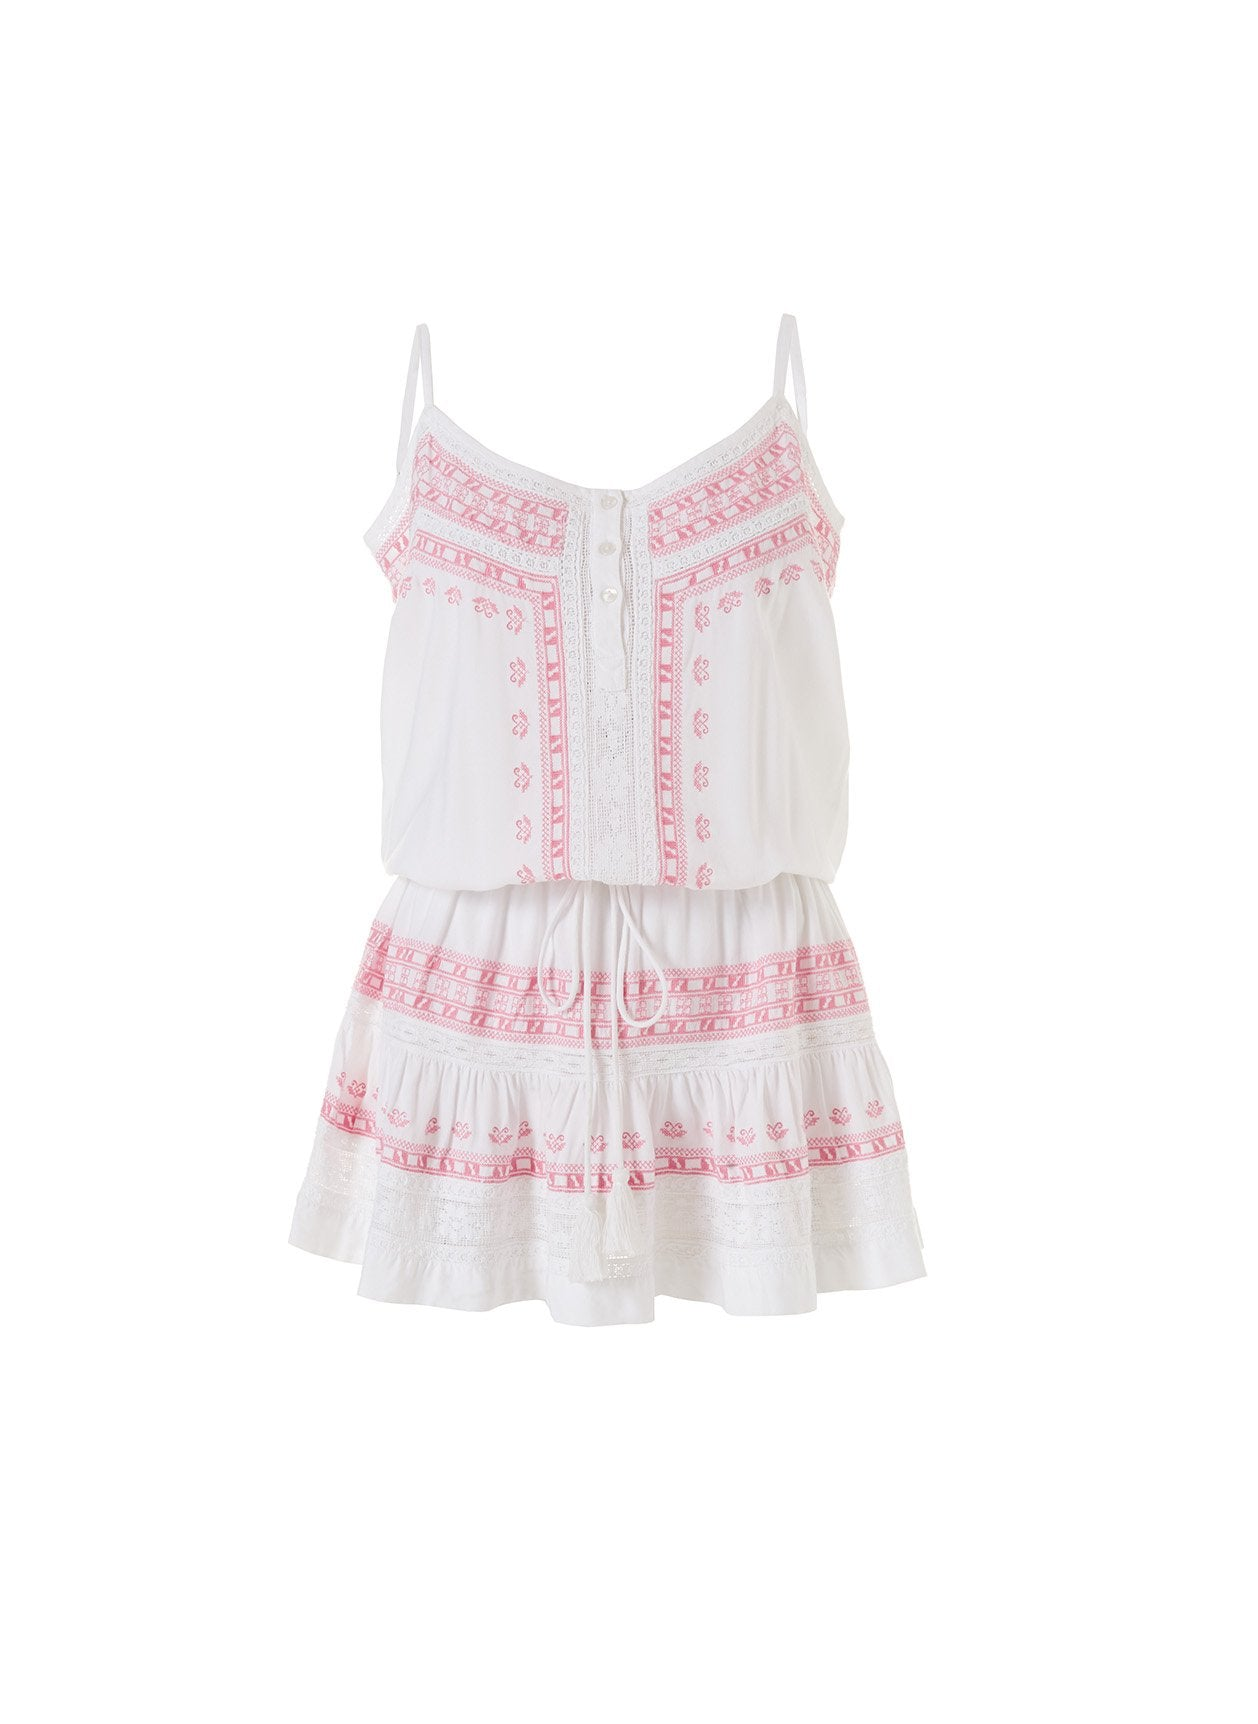 Karen White/Blush Embroidered Over The Shoulder Short Dress 2020